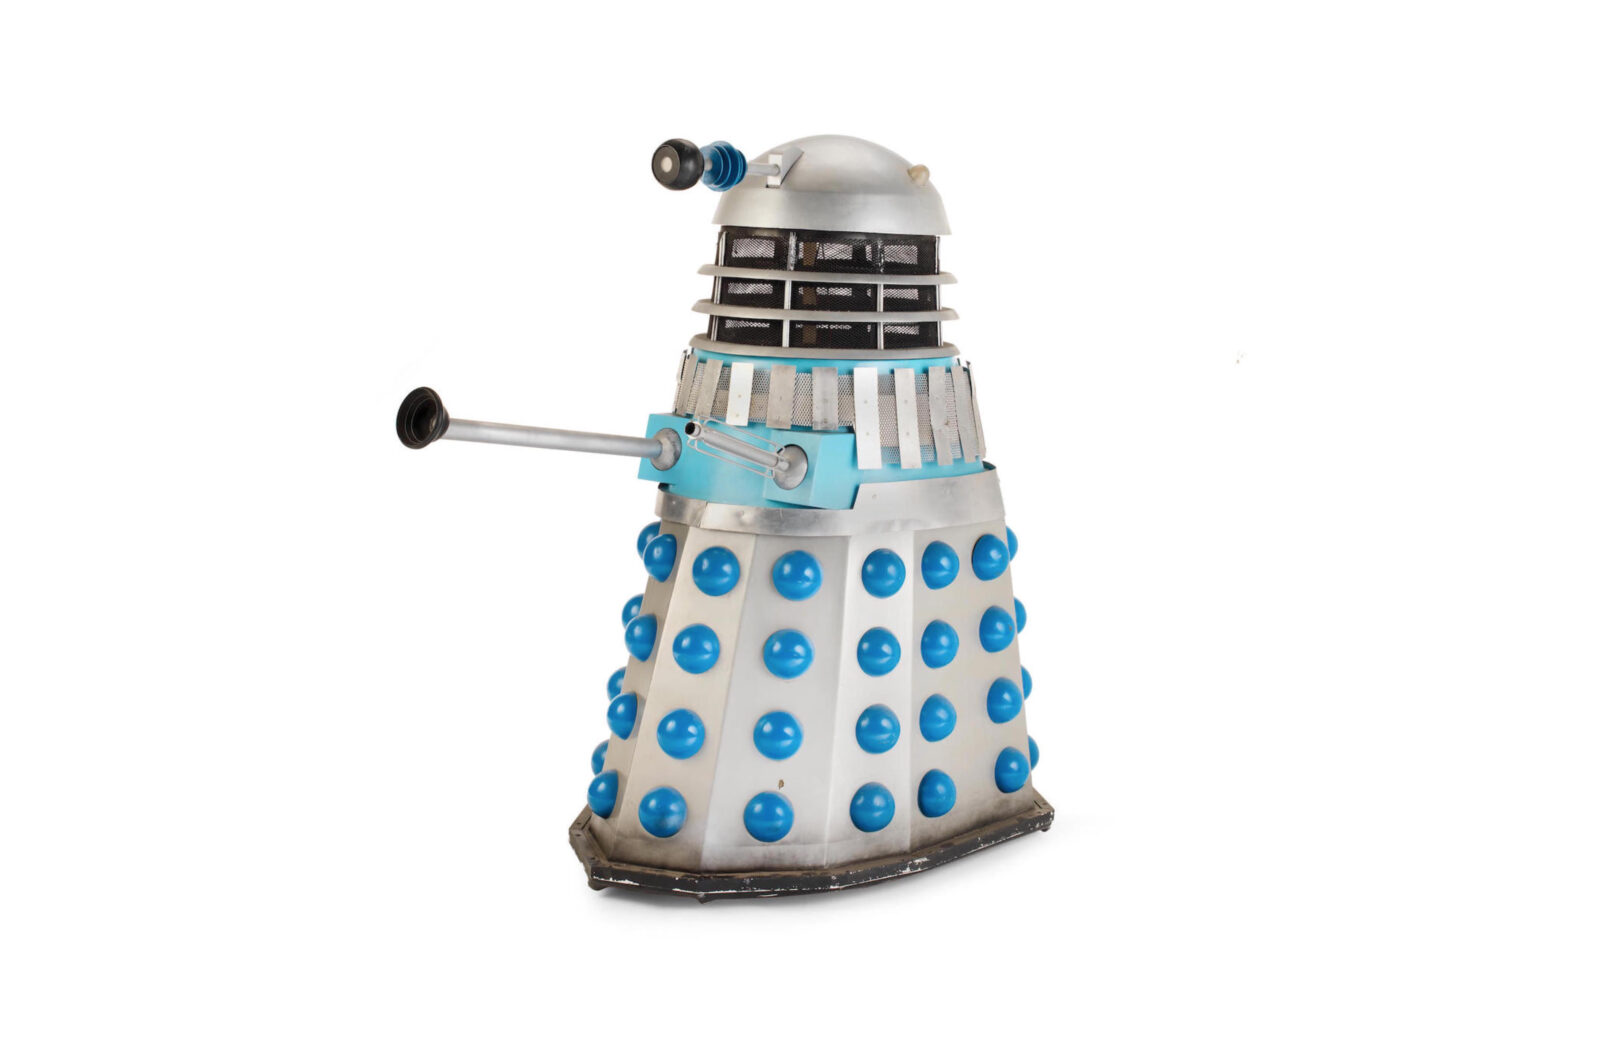 Doctor Who Dalek 1600x1046 - Doctor Who Dalek